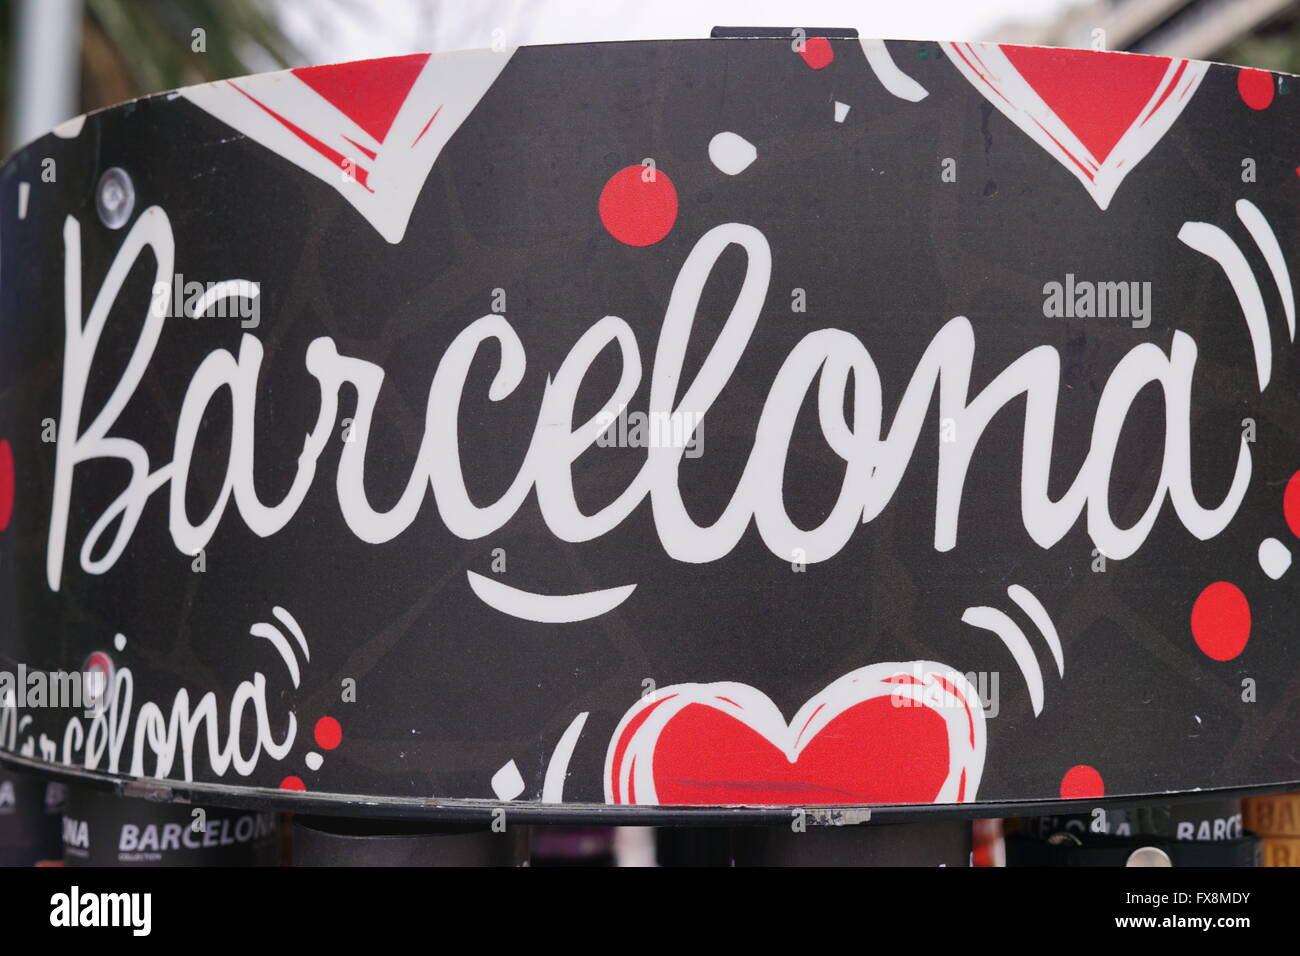 Barcelona written in white and surrounded by red hearts - Stock Image